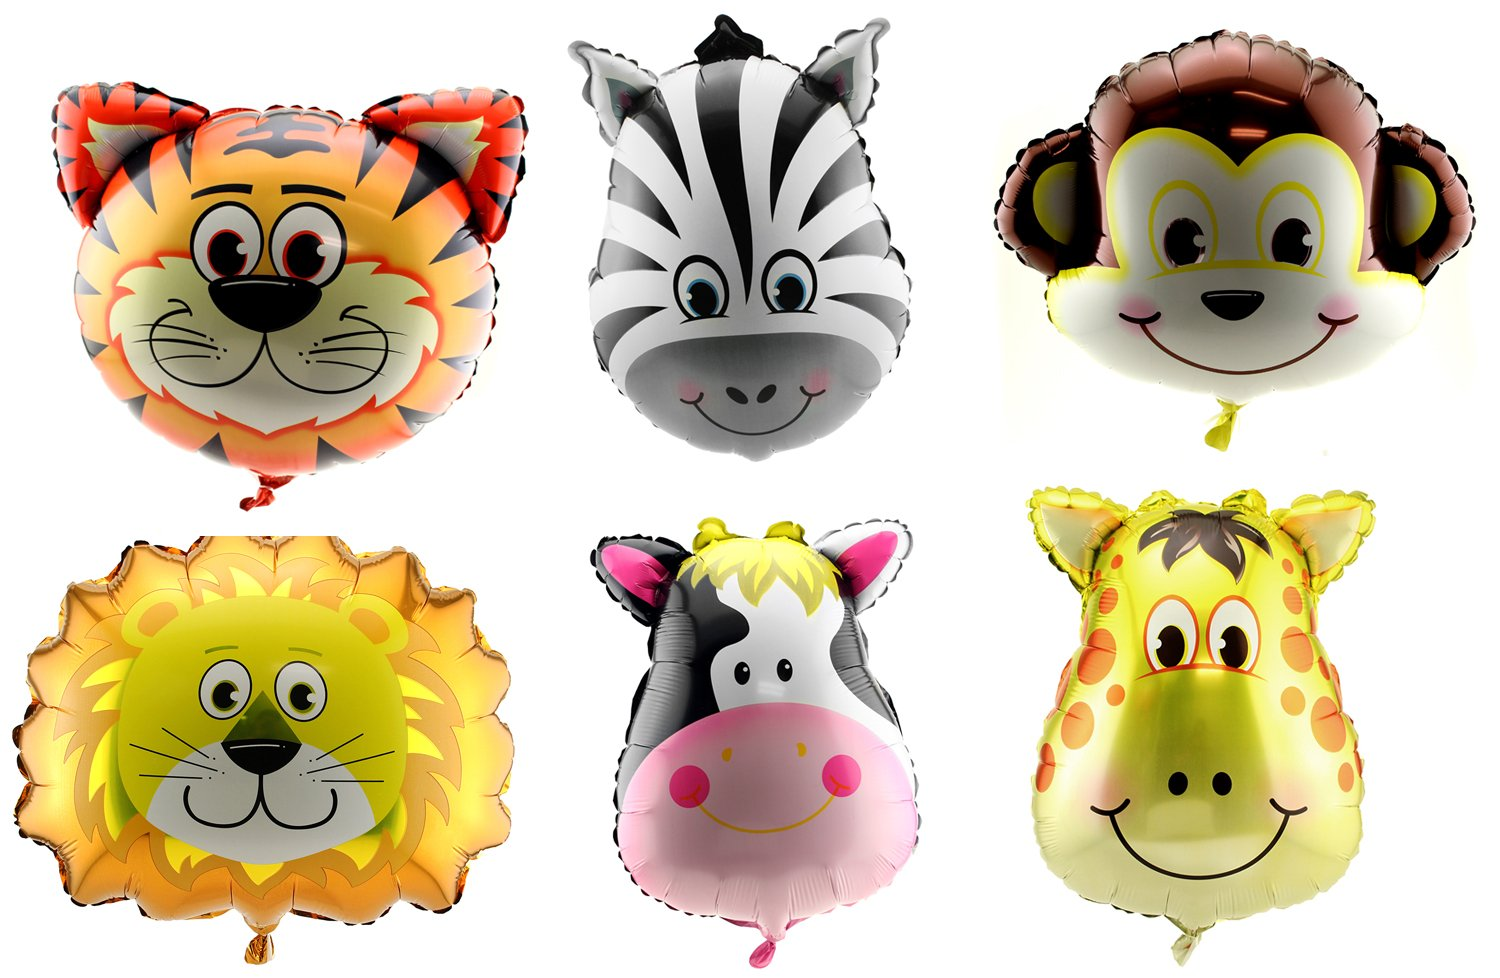 Adorox Set of 6 Animal Giant Balloons Jungle Safari Zoo Theme Party Decorations